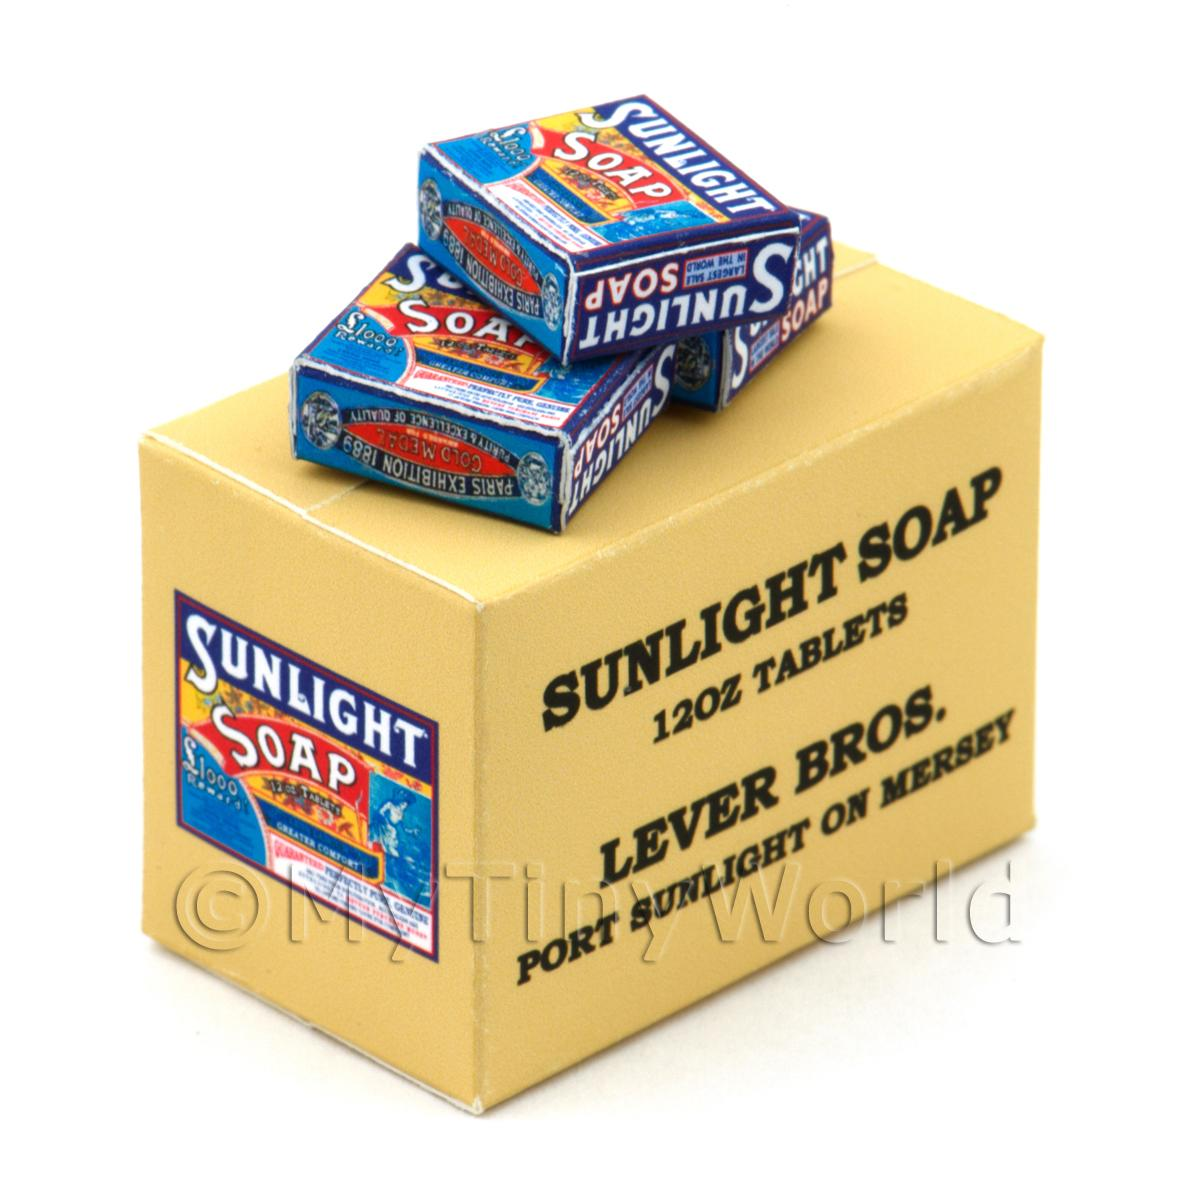 Dolls House Miniature Sunlight Soap Bar Stock Box And 3 Boxes